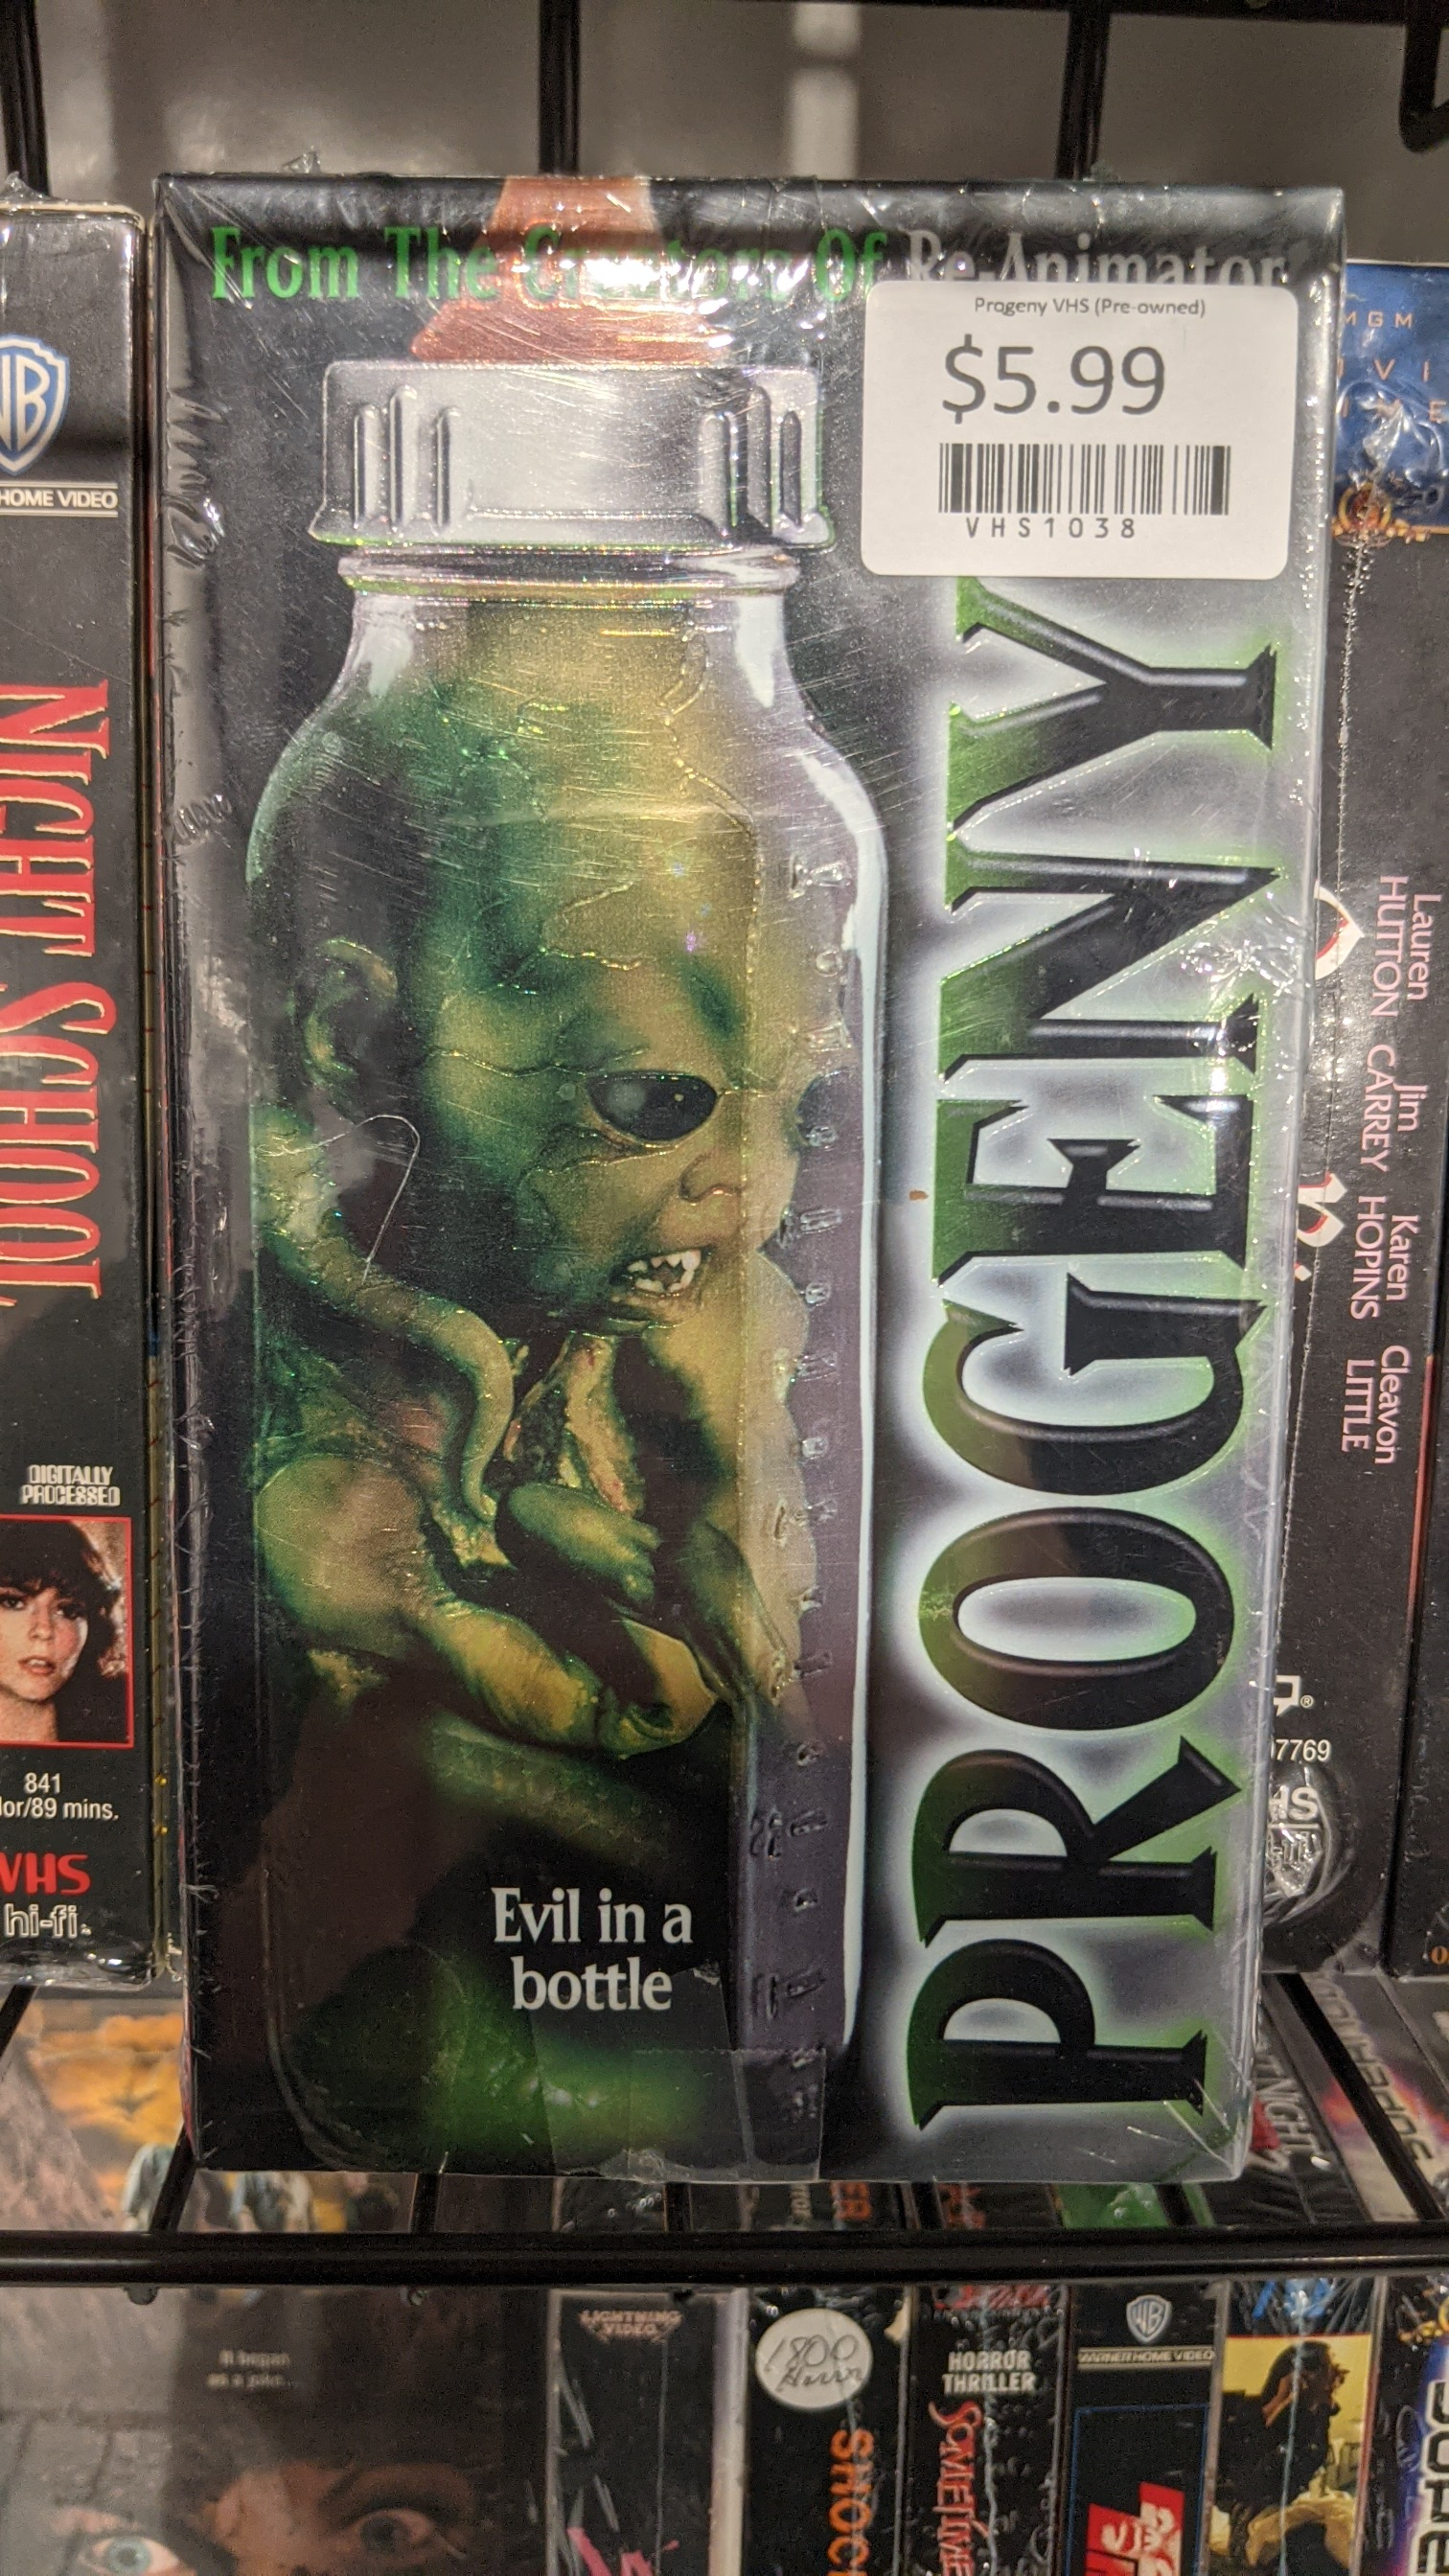 Progeny Pre Owned Vintage VHS